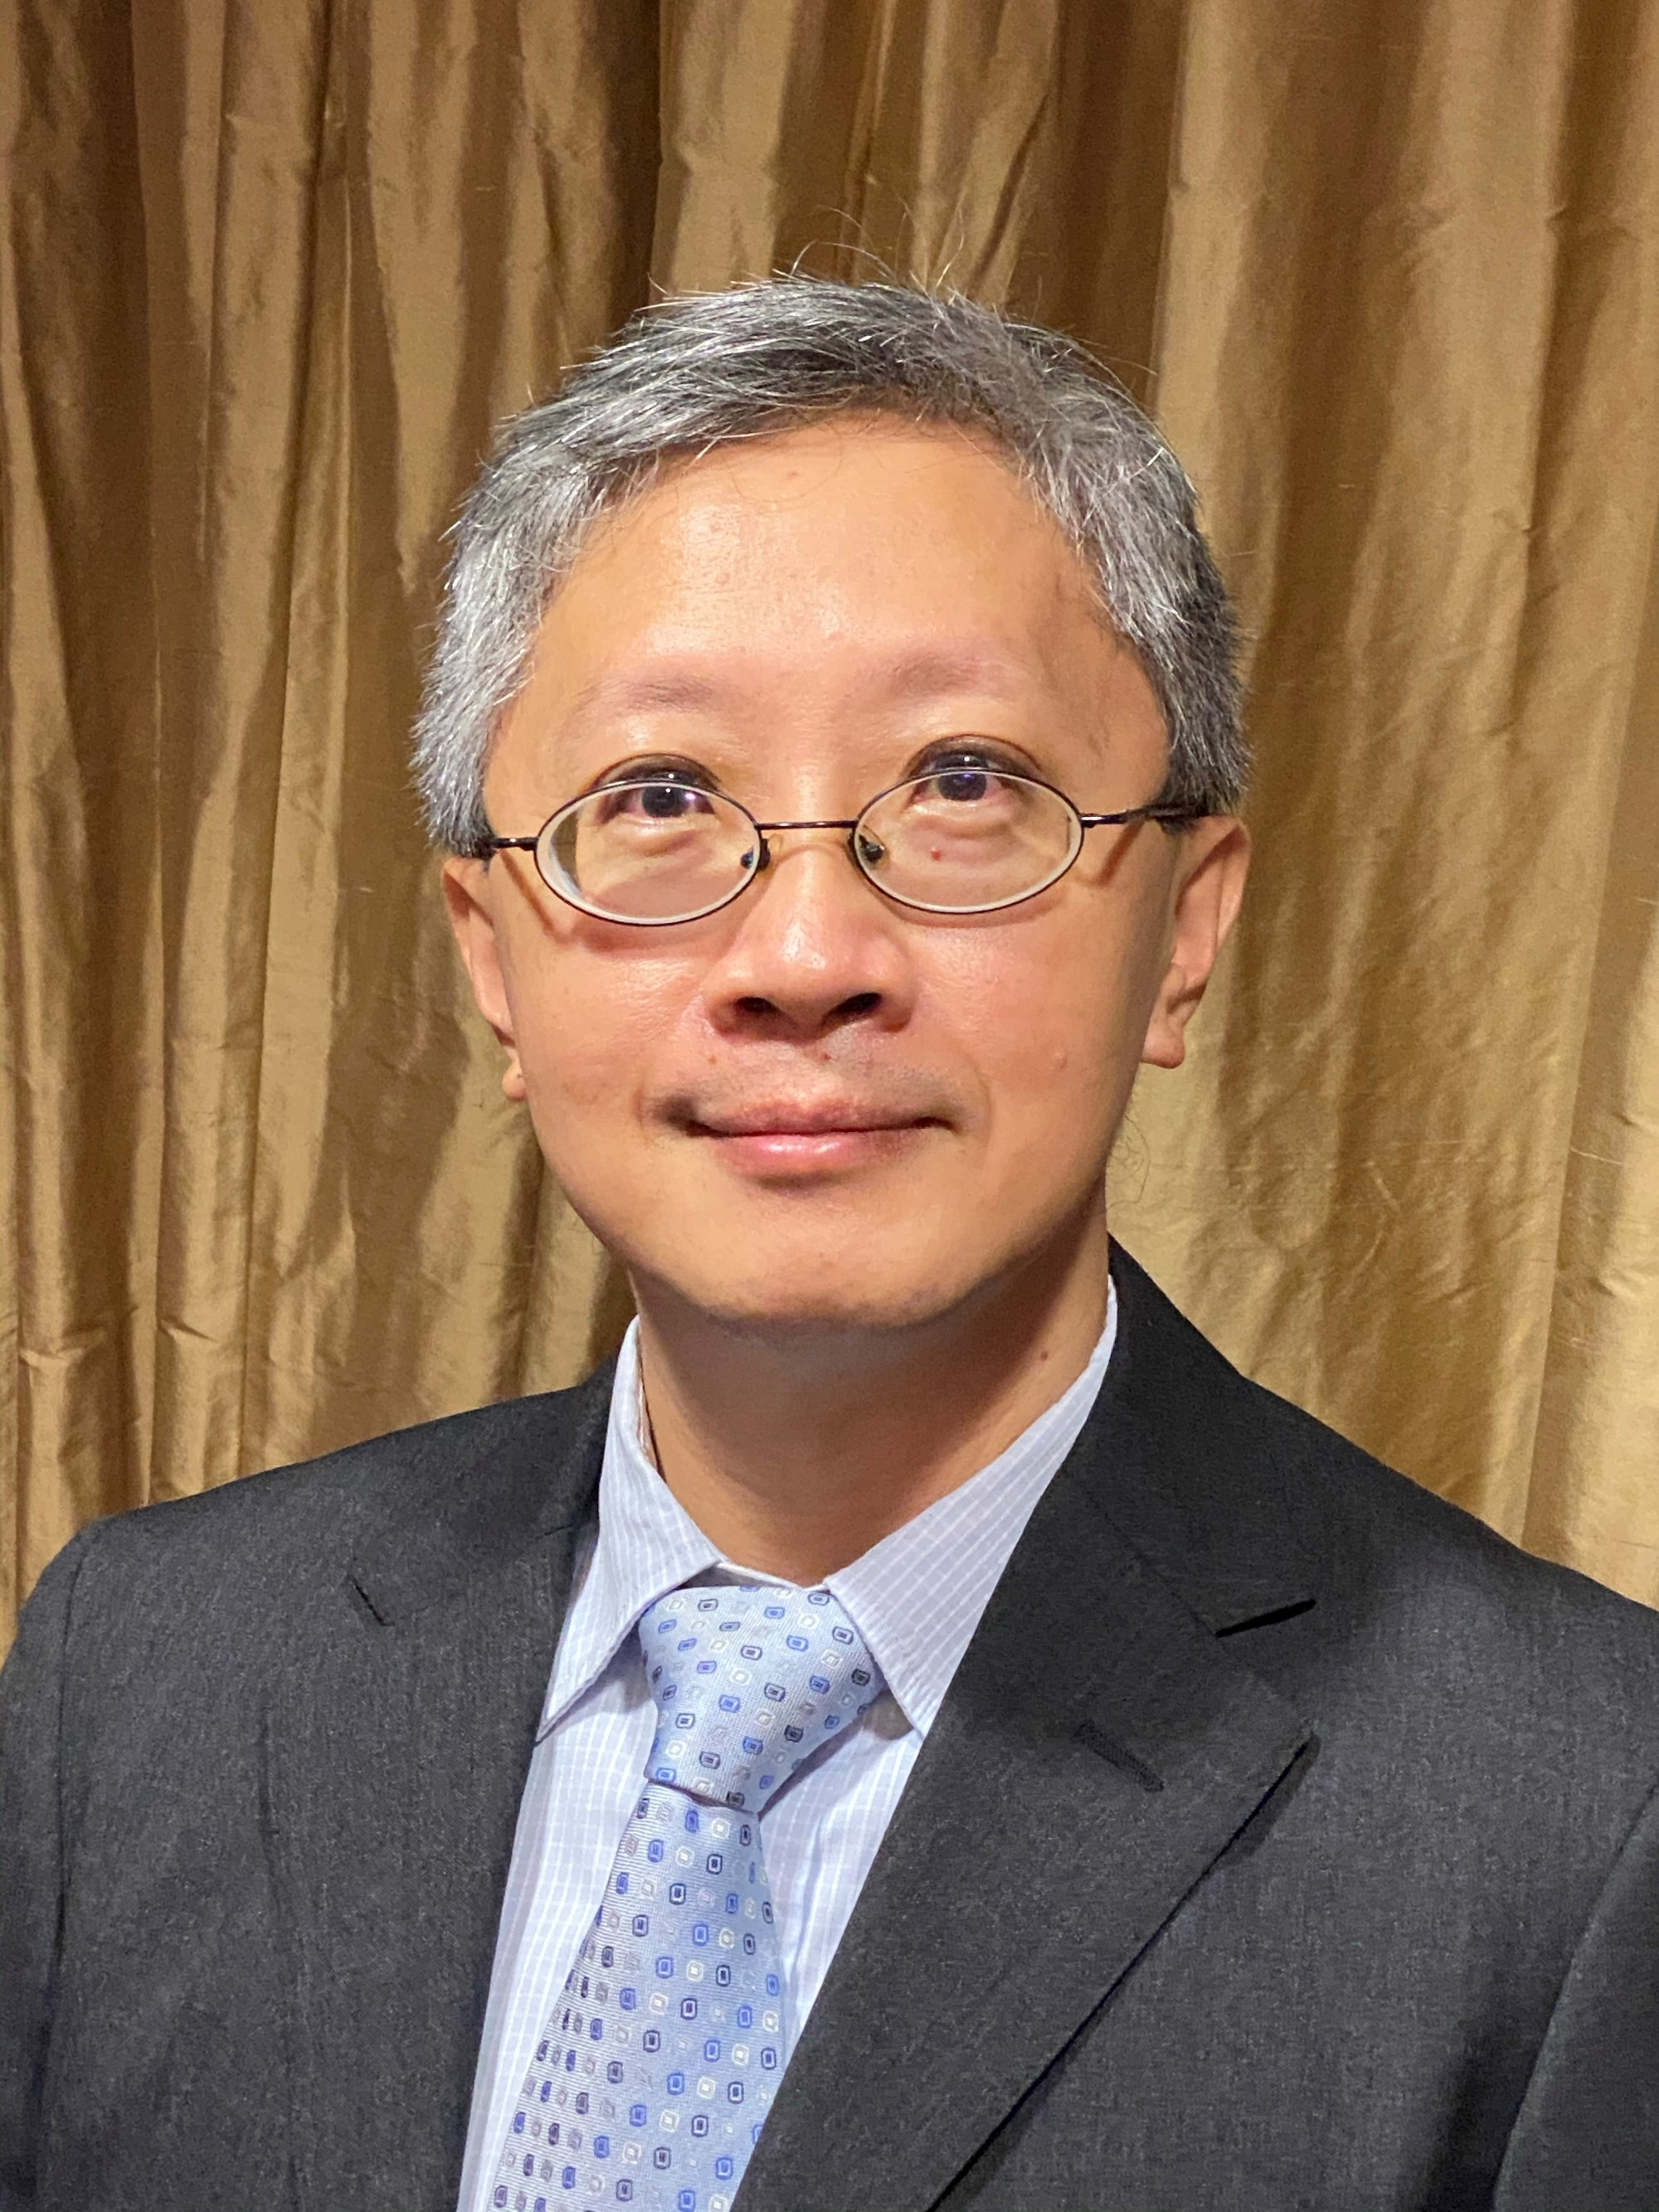 Professor Paul Lai-chuen Lam, Associate Professor of the Centre for Learning Enhancement And Research (CLEAR) was a member of the inter-institutional AIE-AR Team, which was named the 2020 UGC Teaching Award (Teams) recipient this year.